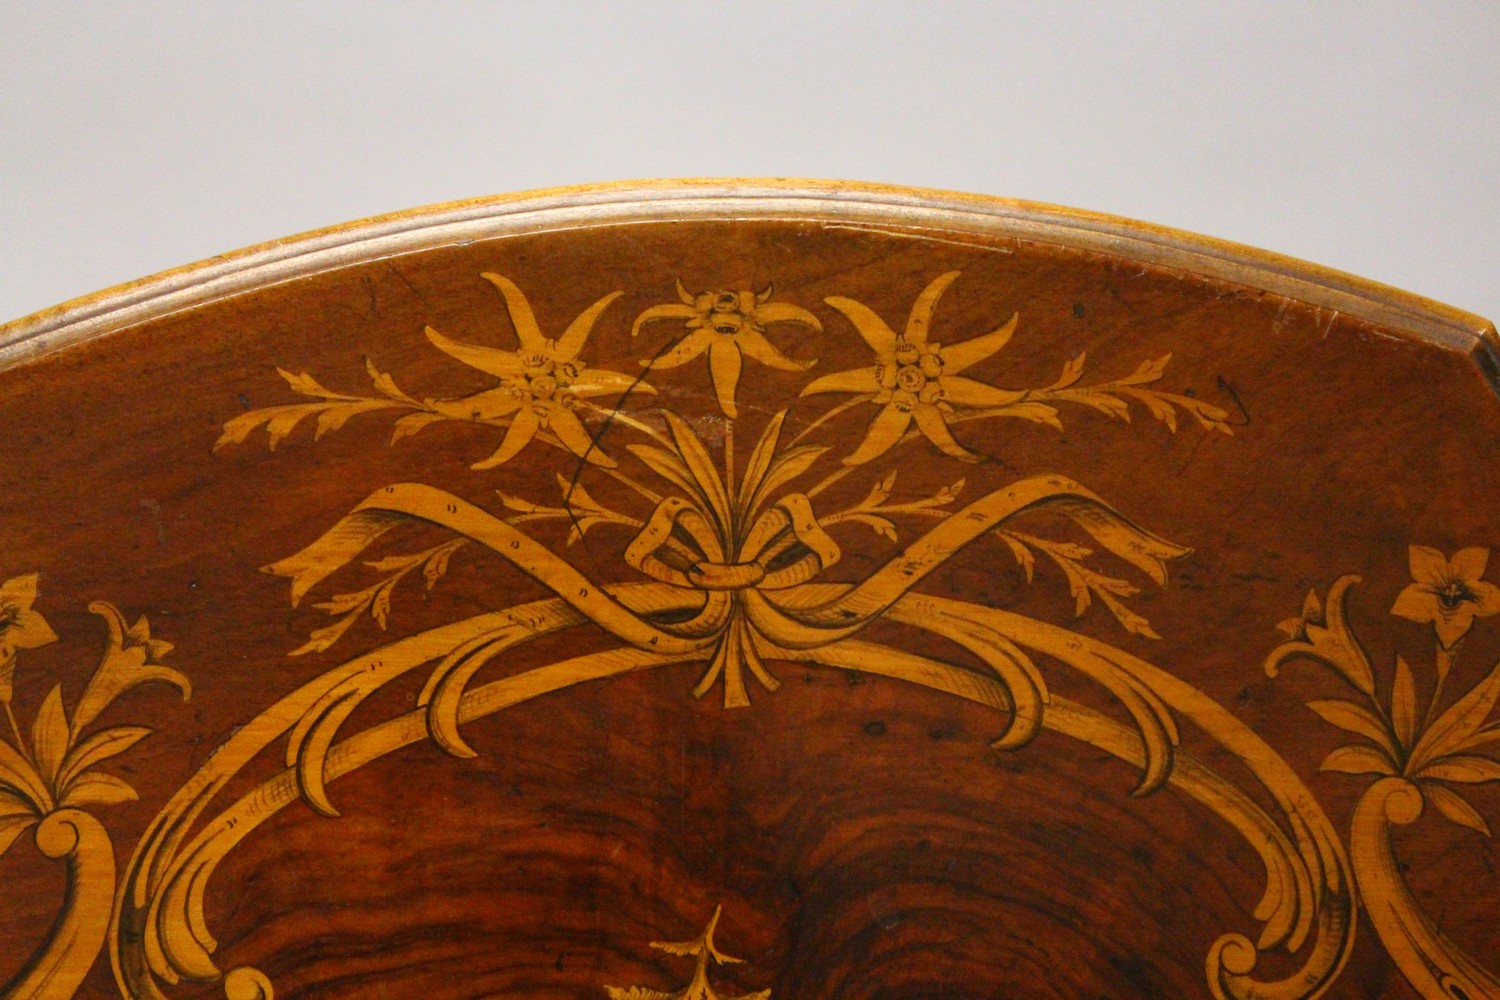 A LATE 19TH CENTURY BLACK FOREST INLAID TABLE. 2ft 1.5ins wide x 2ft 7ins high. - Image 4 of 14